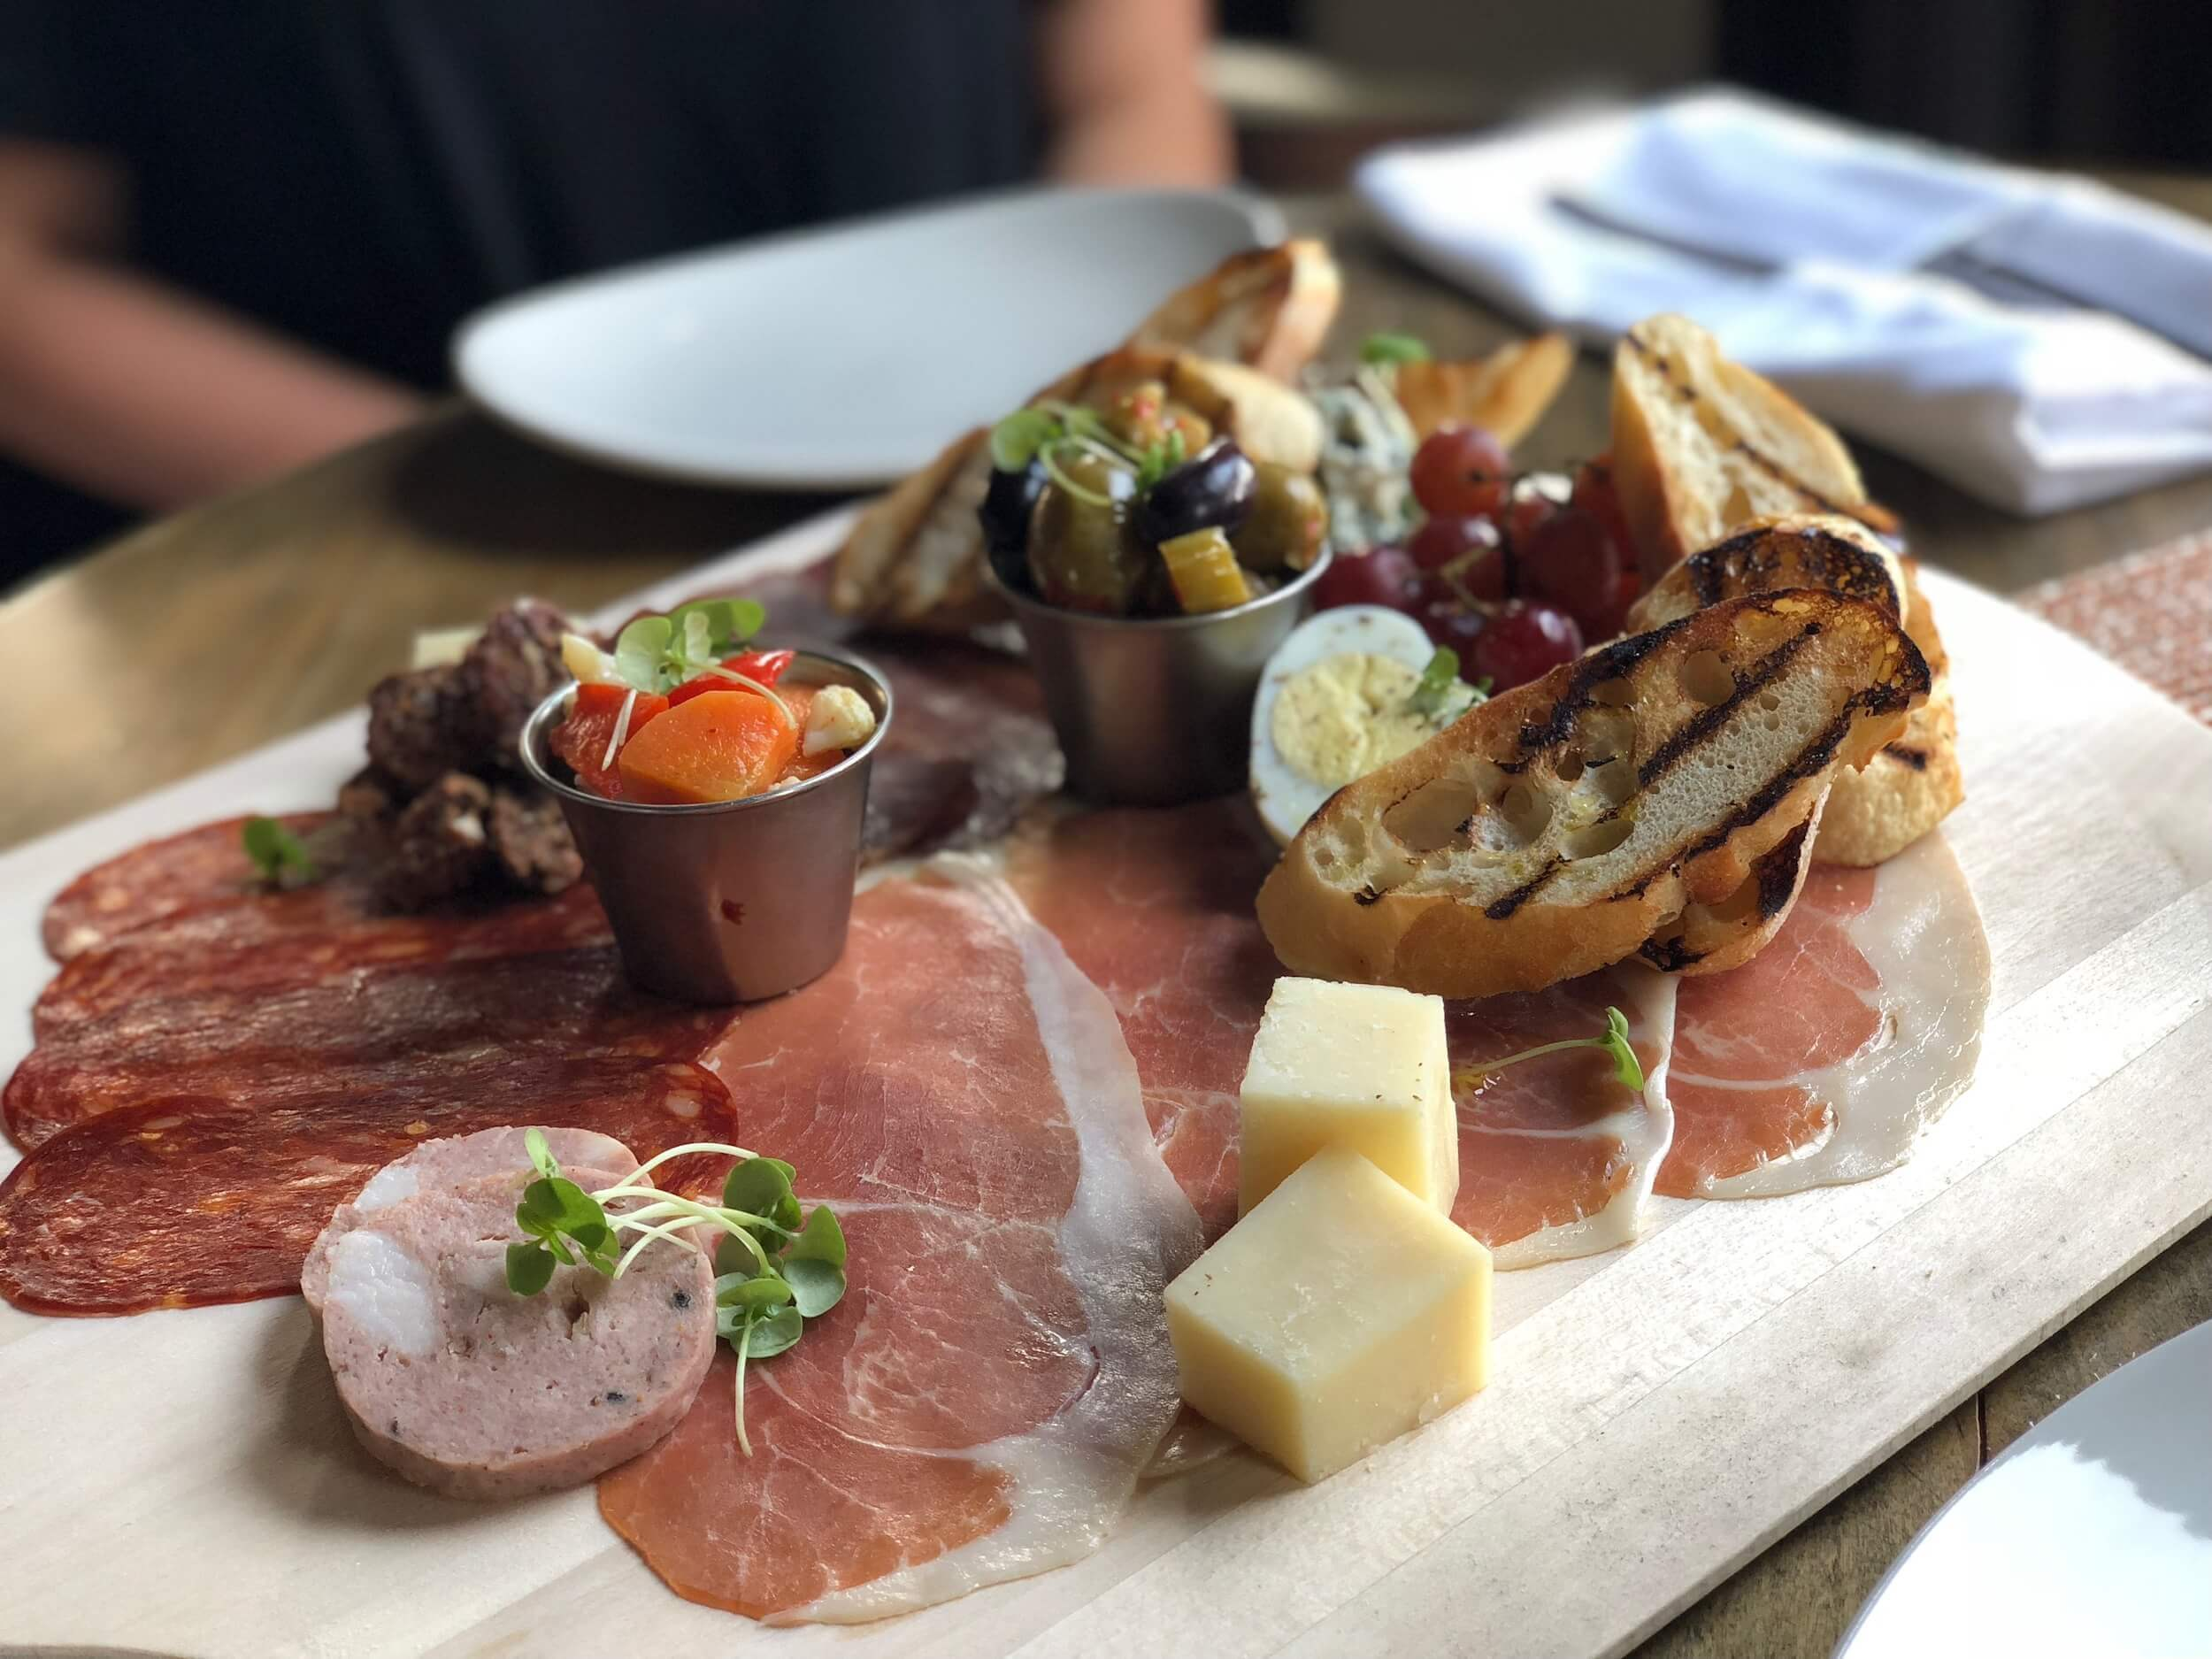 Cellar Board. a selection of cured meats, artisan cheeses, marinated olives, giardinara & served with toasted baguette